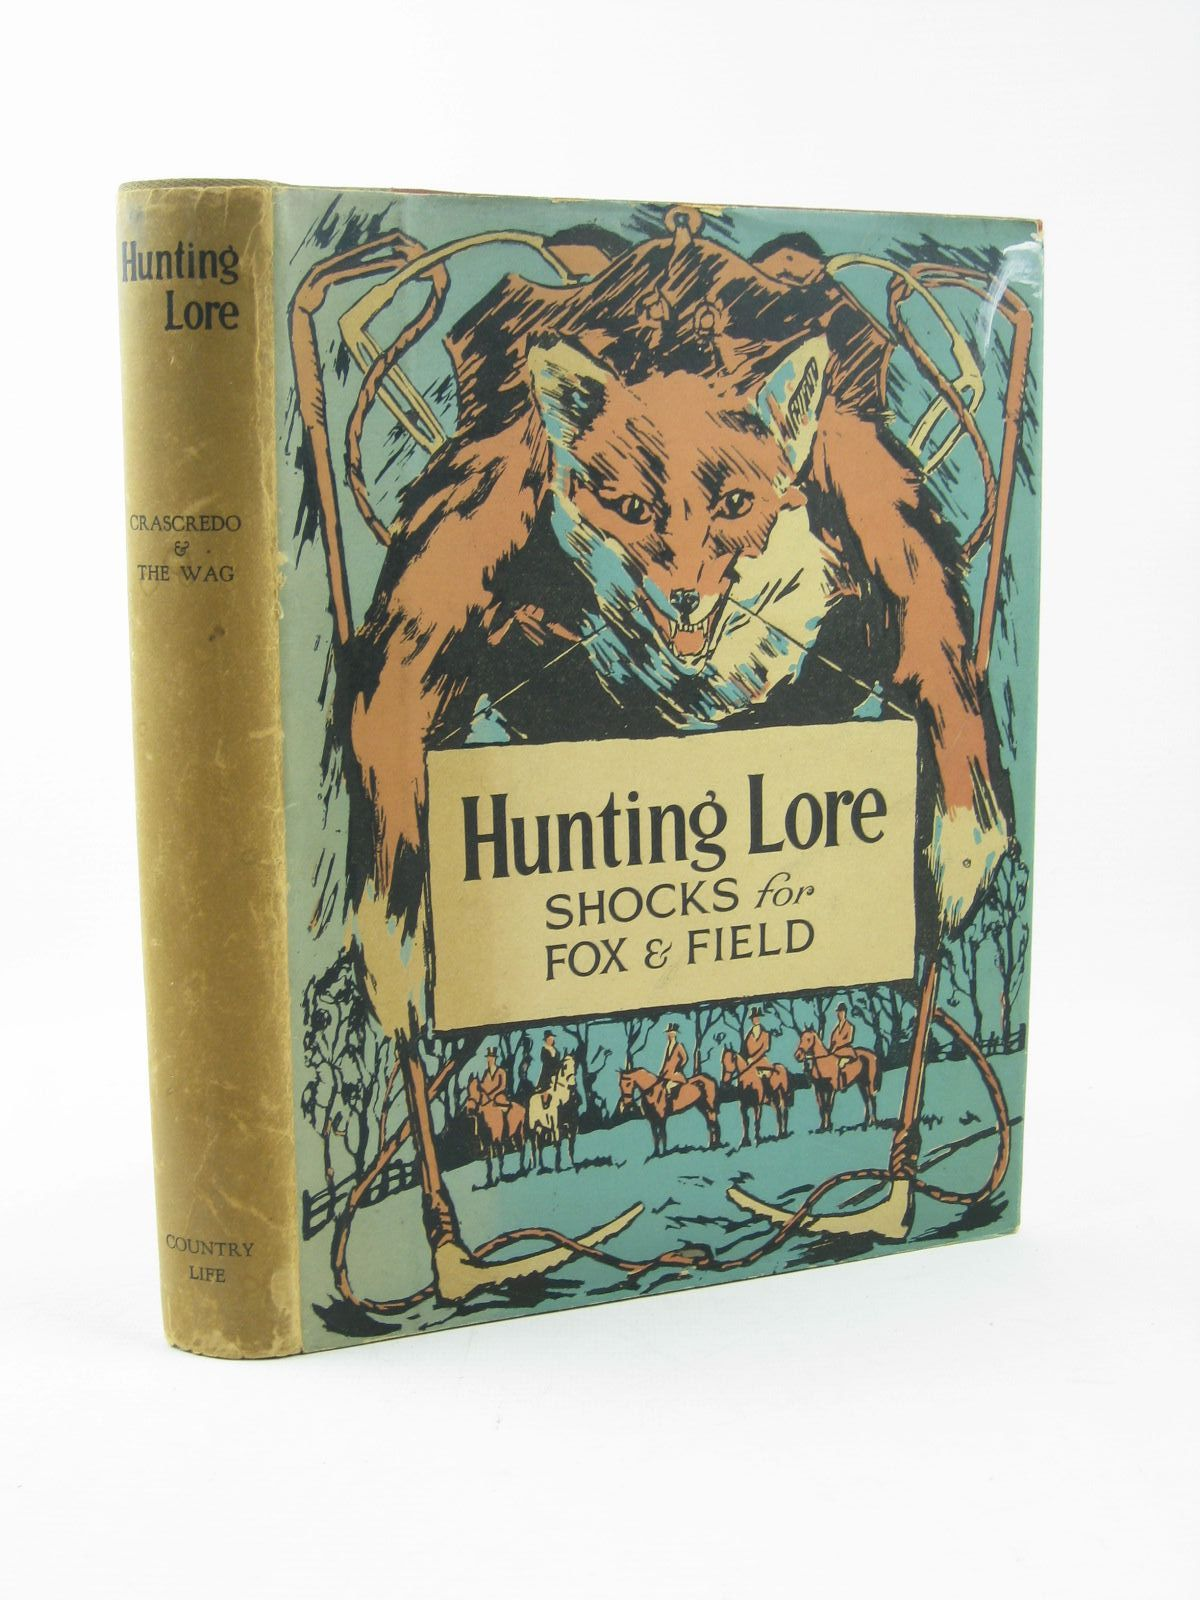 Photo of HUNTING LORE SHOCKS FOR FOX AND FIELD written by Crascredo,  illustrated by The Wag,  published by Country Life Ltd. (STOCK CODE: 1311839)  for sale by Stella & Rose's Books